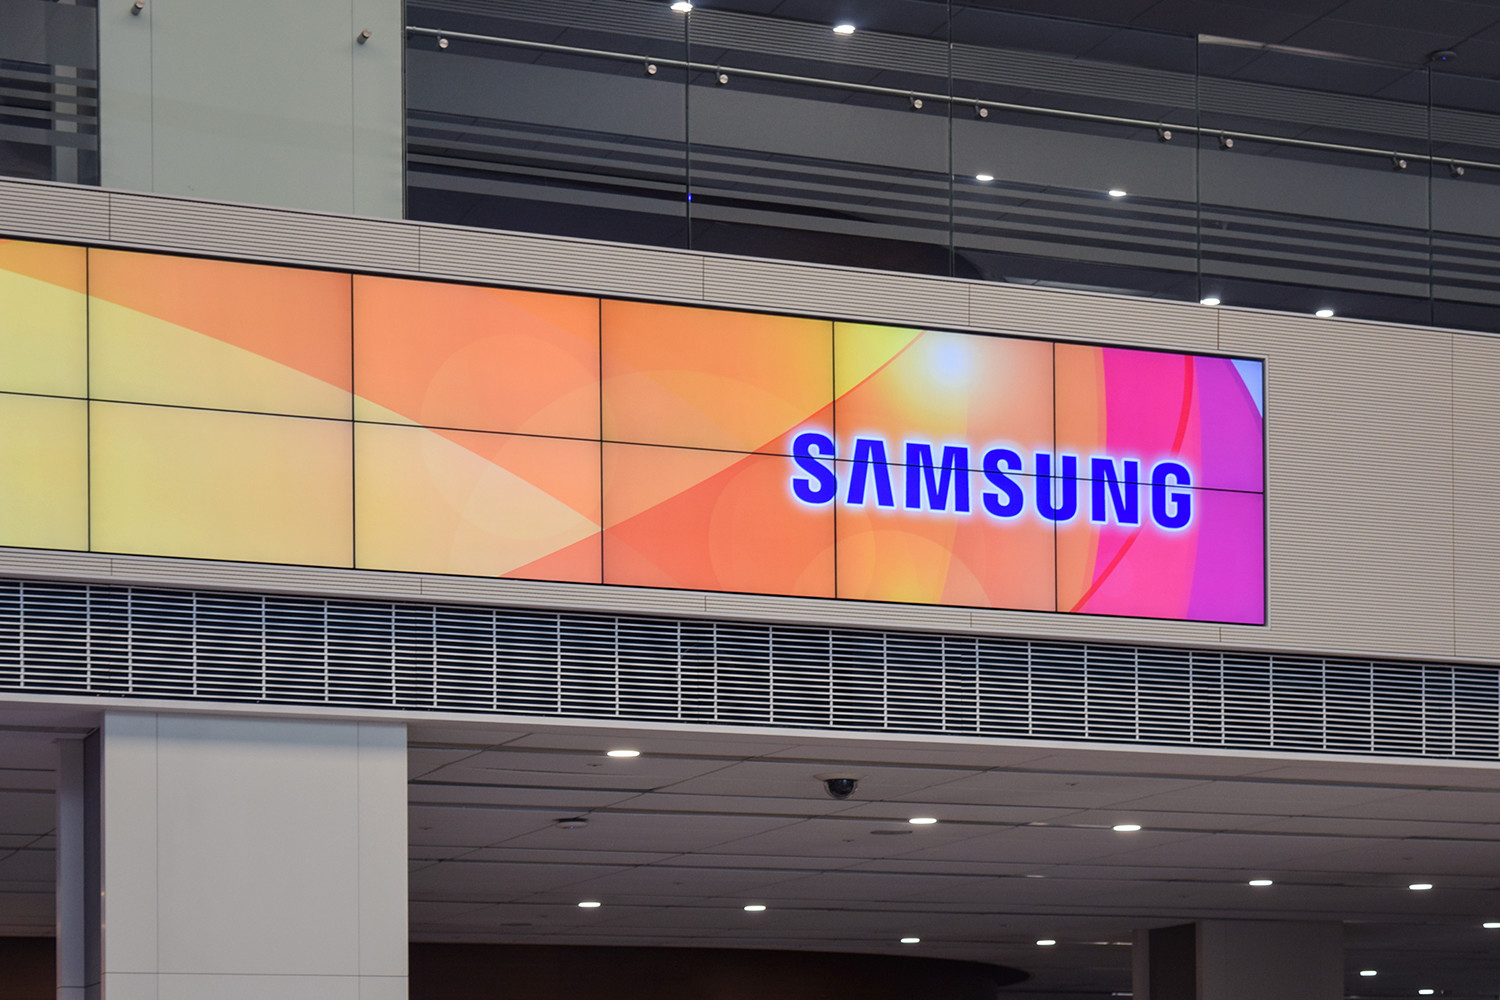 Samsung Tizen has 40 zero-day vulnerabilities, researcher warns